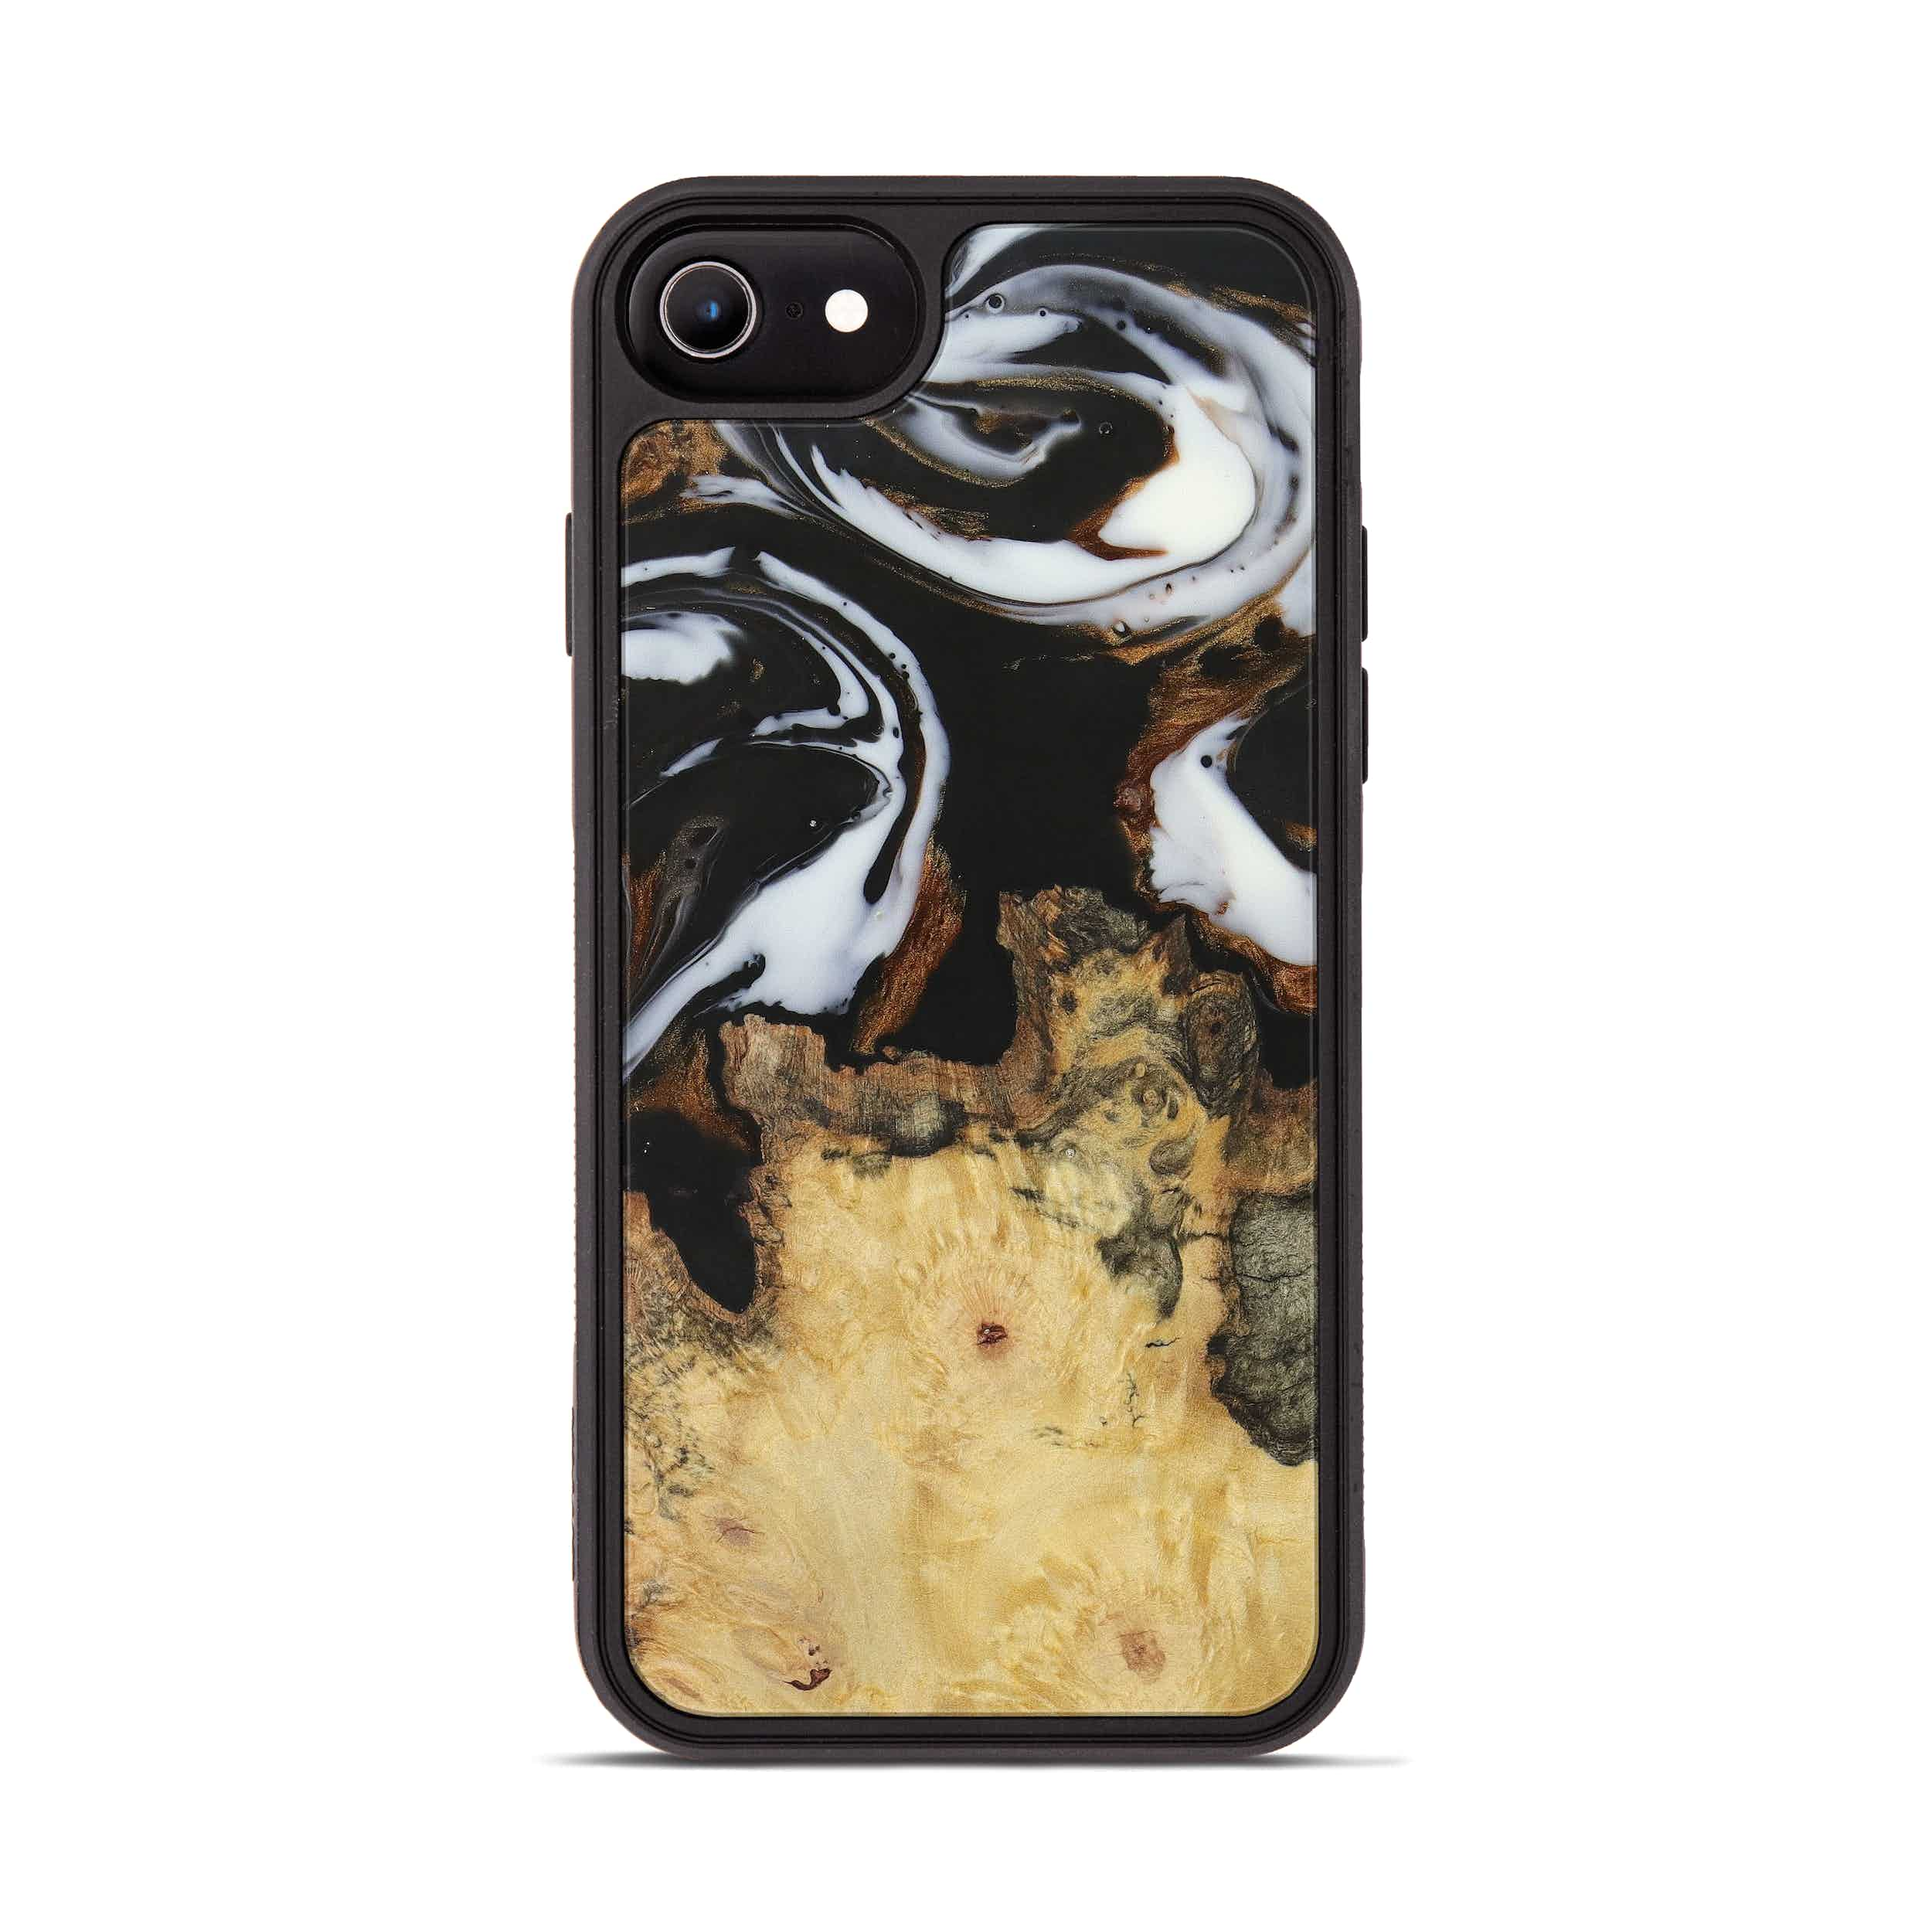 iPhone 8 Wood+Resin Phone Case - Cate (Black & White, 390667)